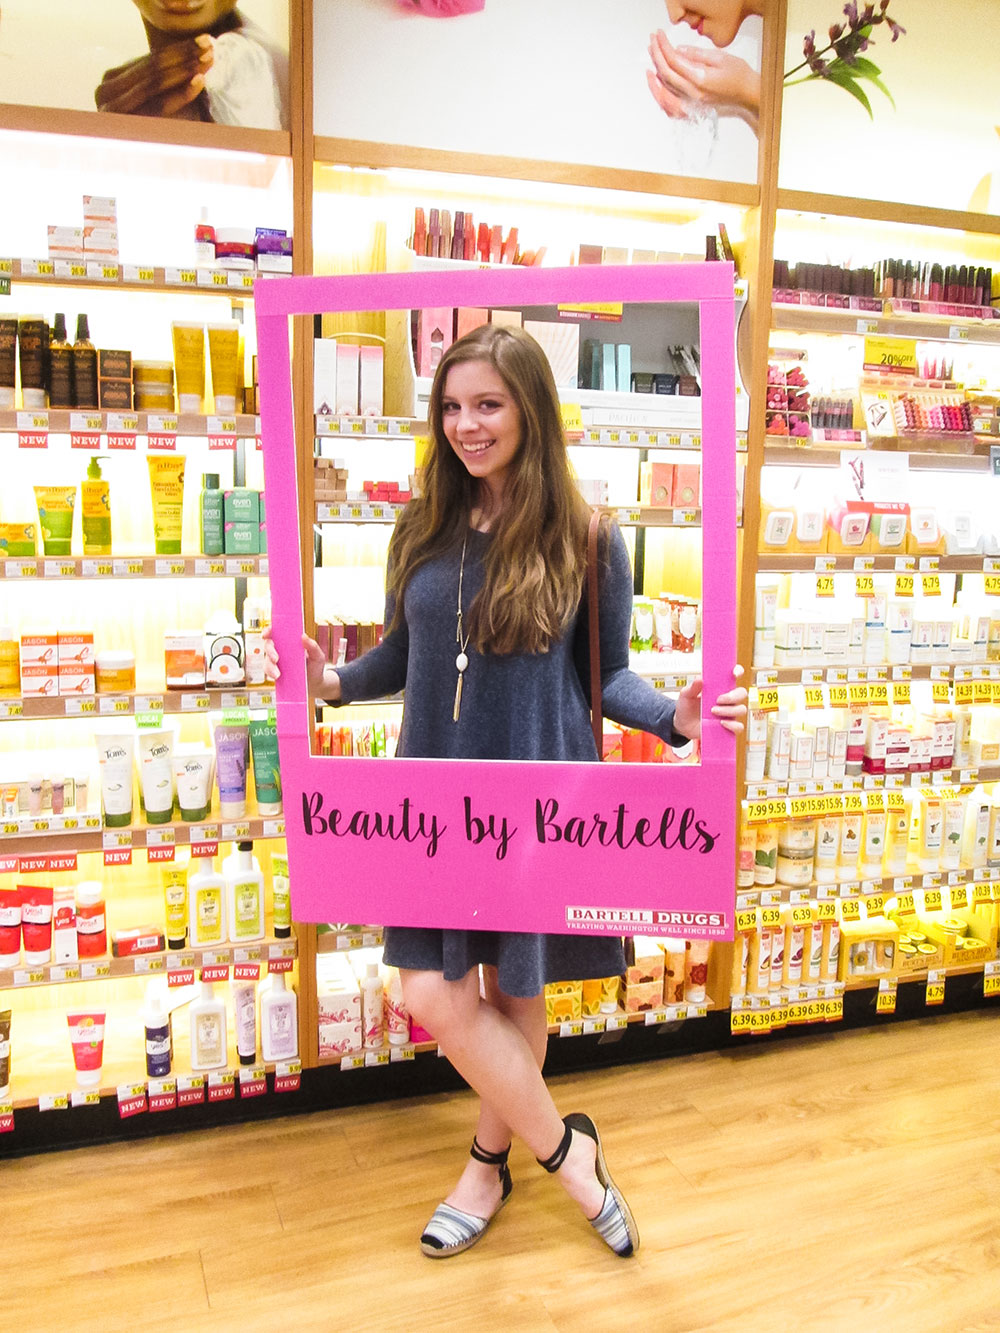 Beauty by Bartells // Spring Bartell Drugs Beauty Event